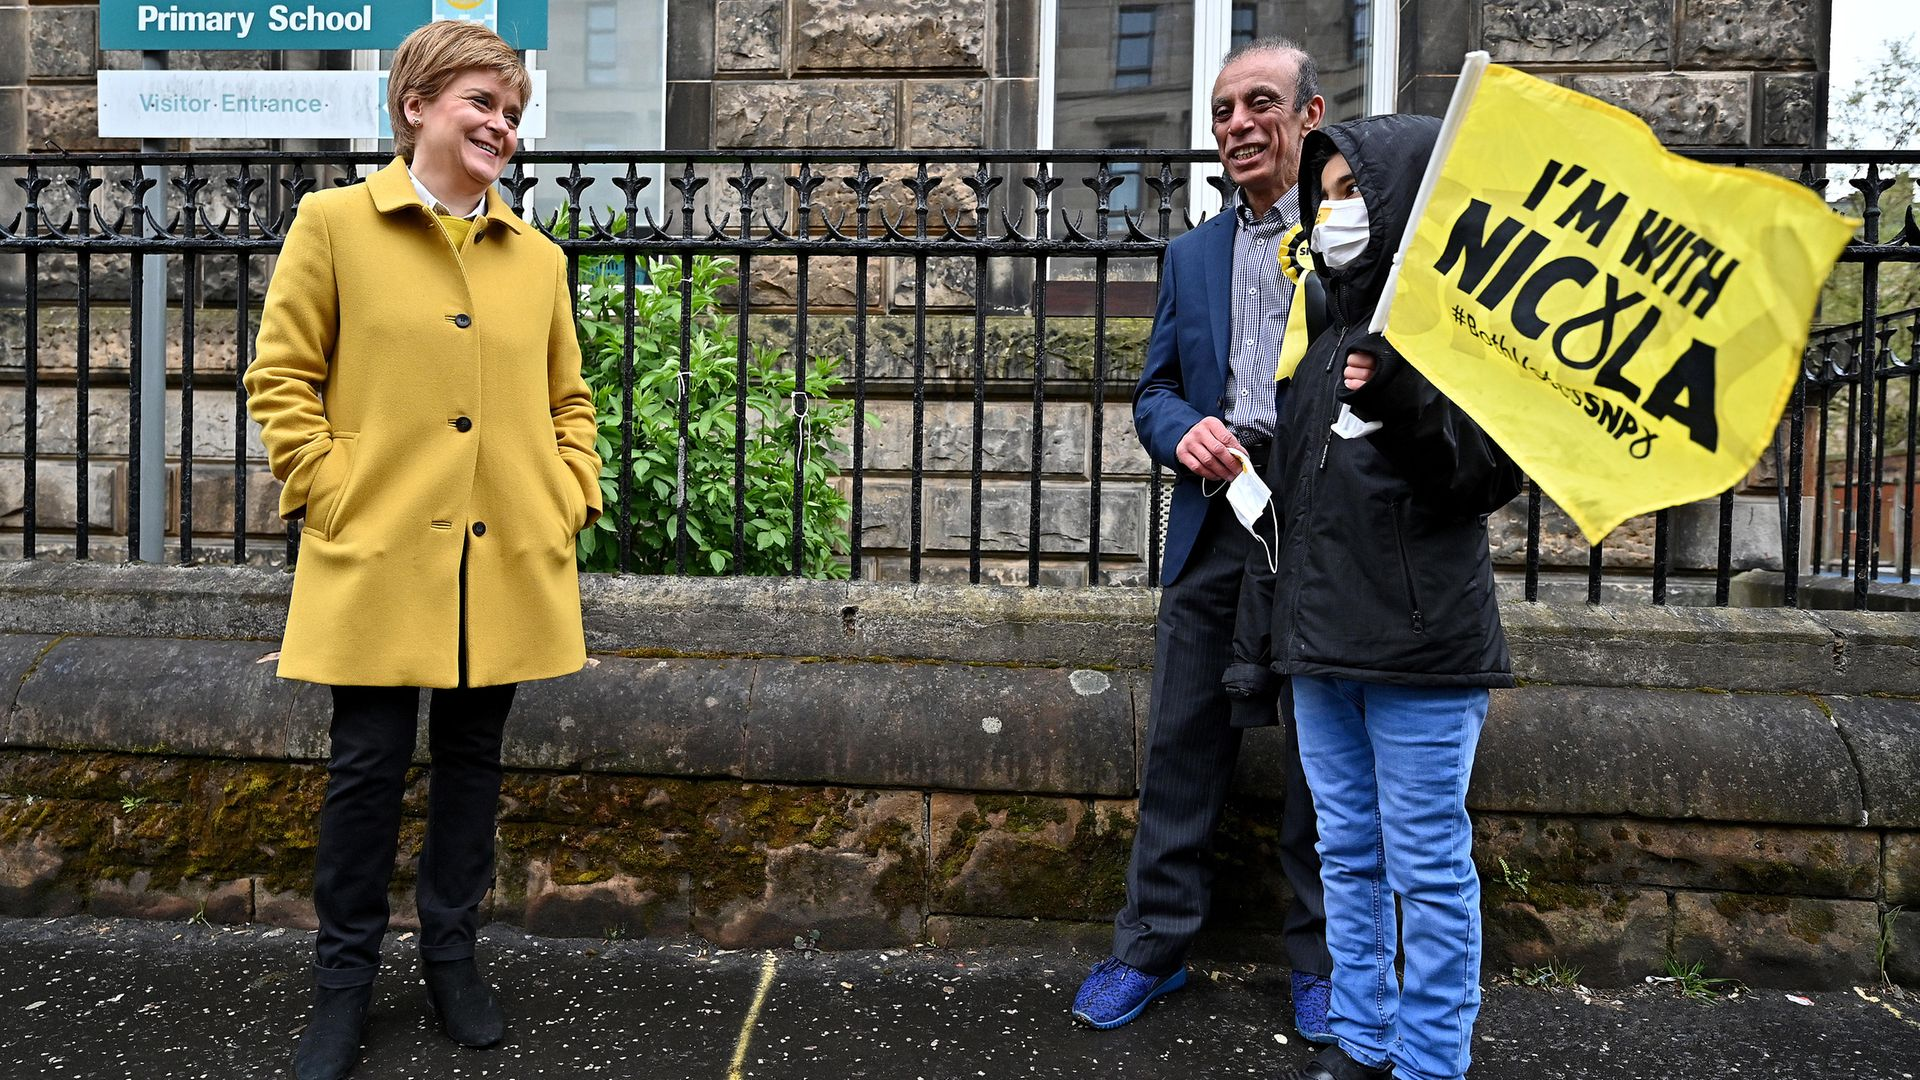 First Minister and leader of the SNP Nicola Sturgeon meets voters as she arrives to cast her vote in the Scottish Parliamentary election at the Annette Street school in Govanhill, Glasgow - Credit: PA